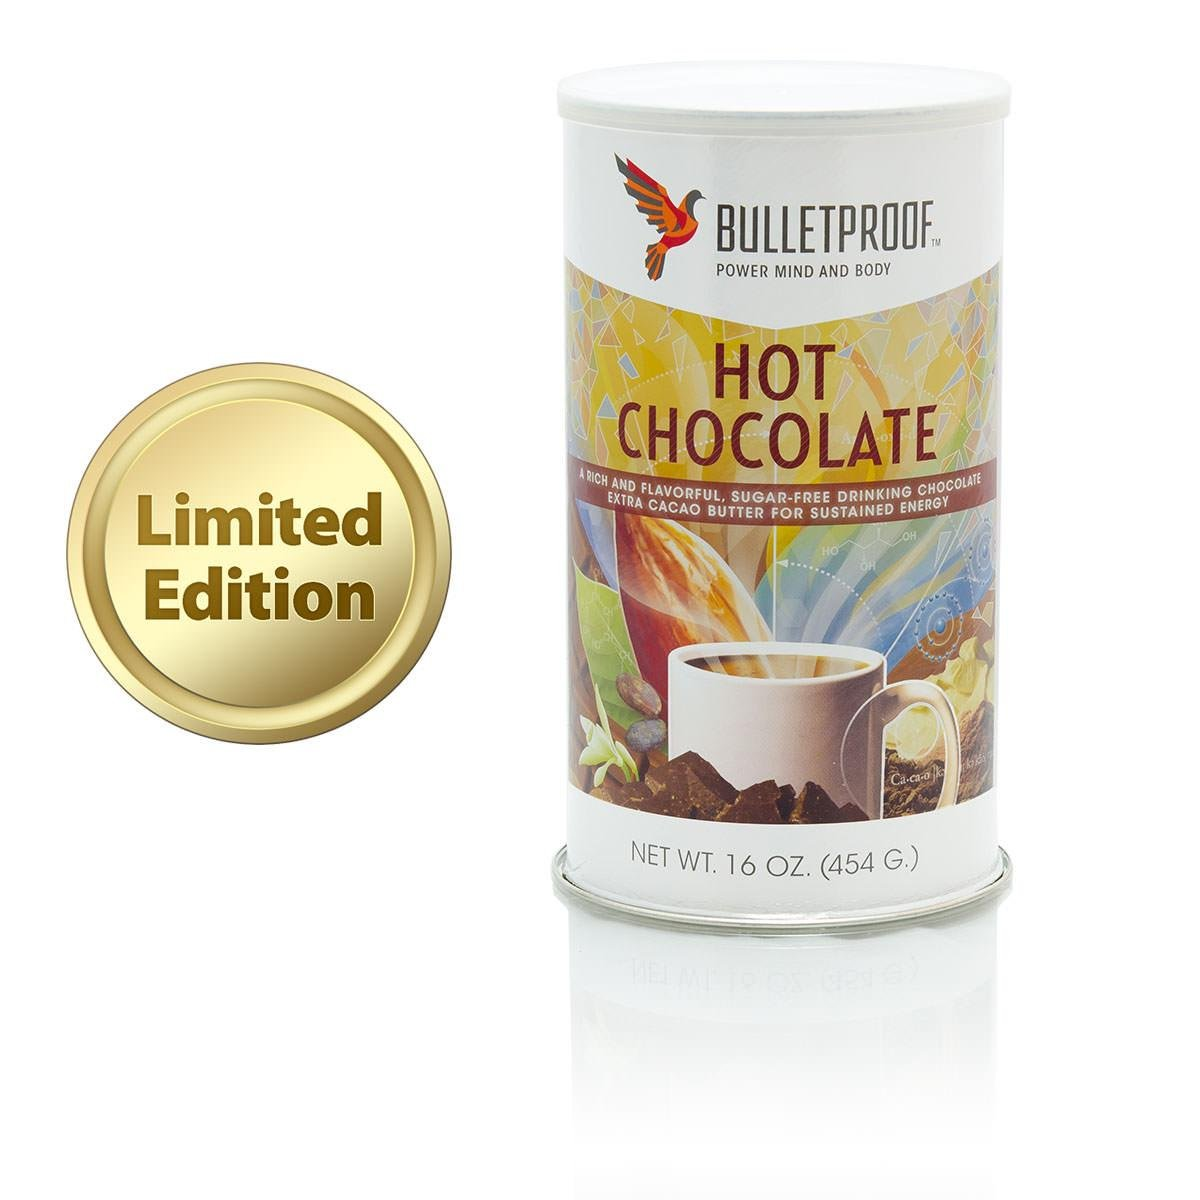 Amazon.com : Bulletproof Limited Edition Hot Chocolate Mix, sugar ...